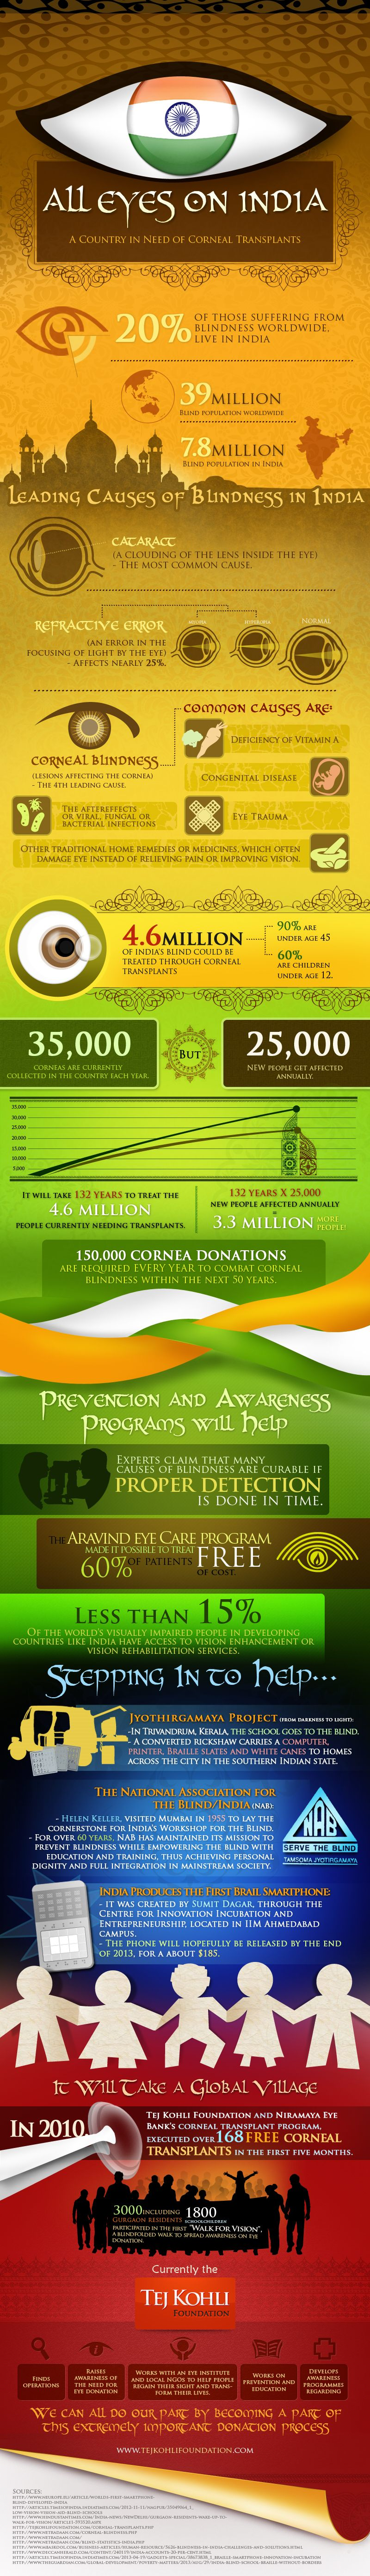 all eyes on india infographic